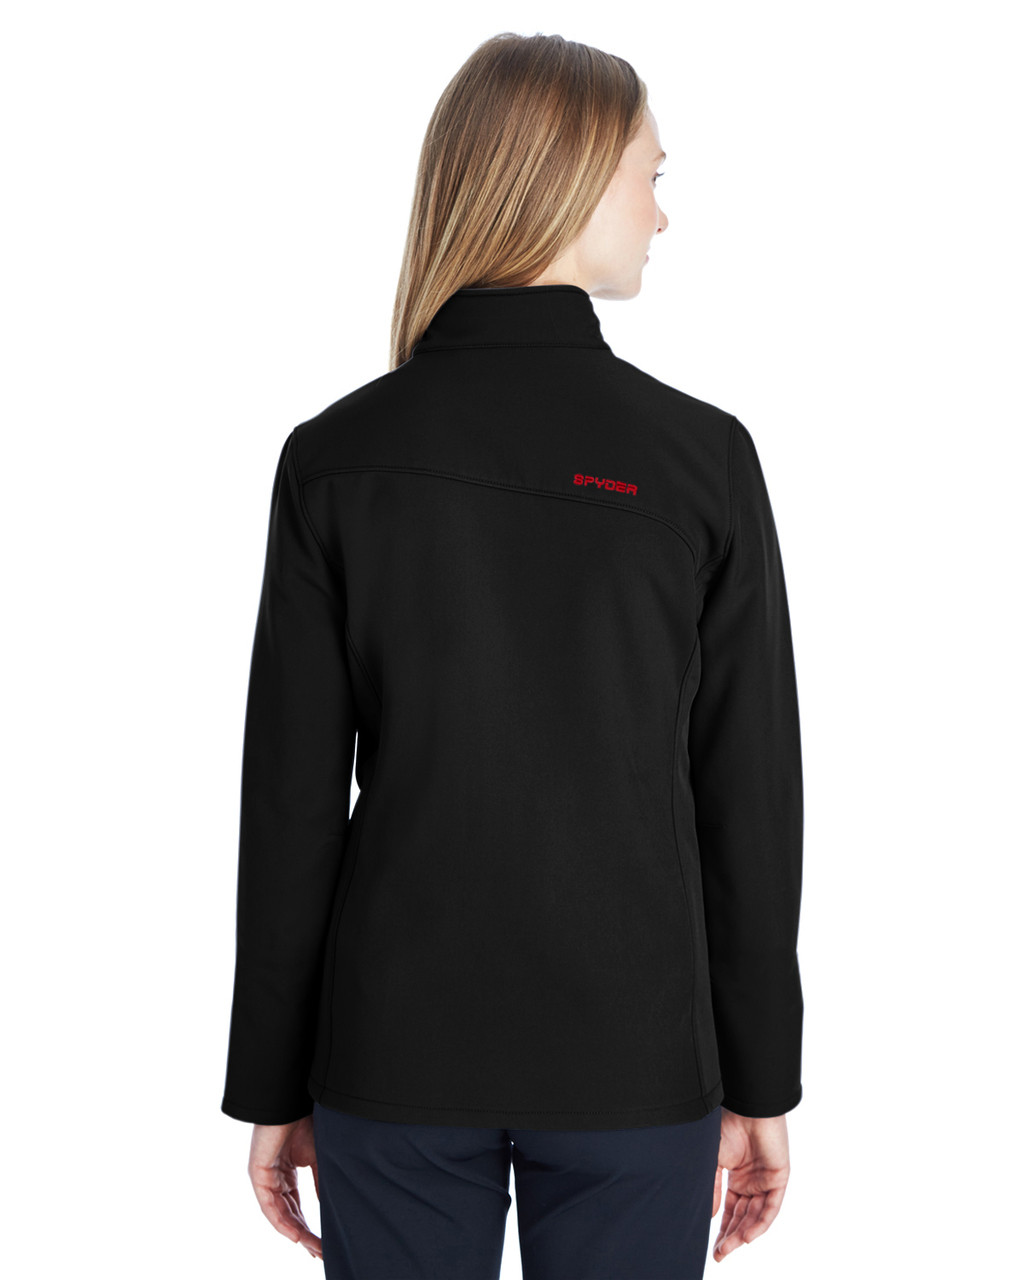 Black/Red, Back - 187337 Spyder Ladies' Transport Softshell Jacket | BlankClothing.ca